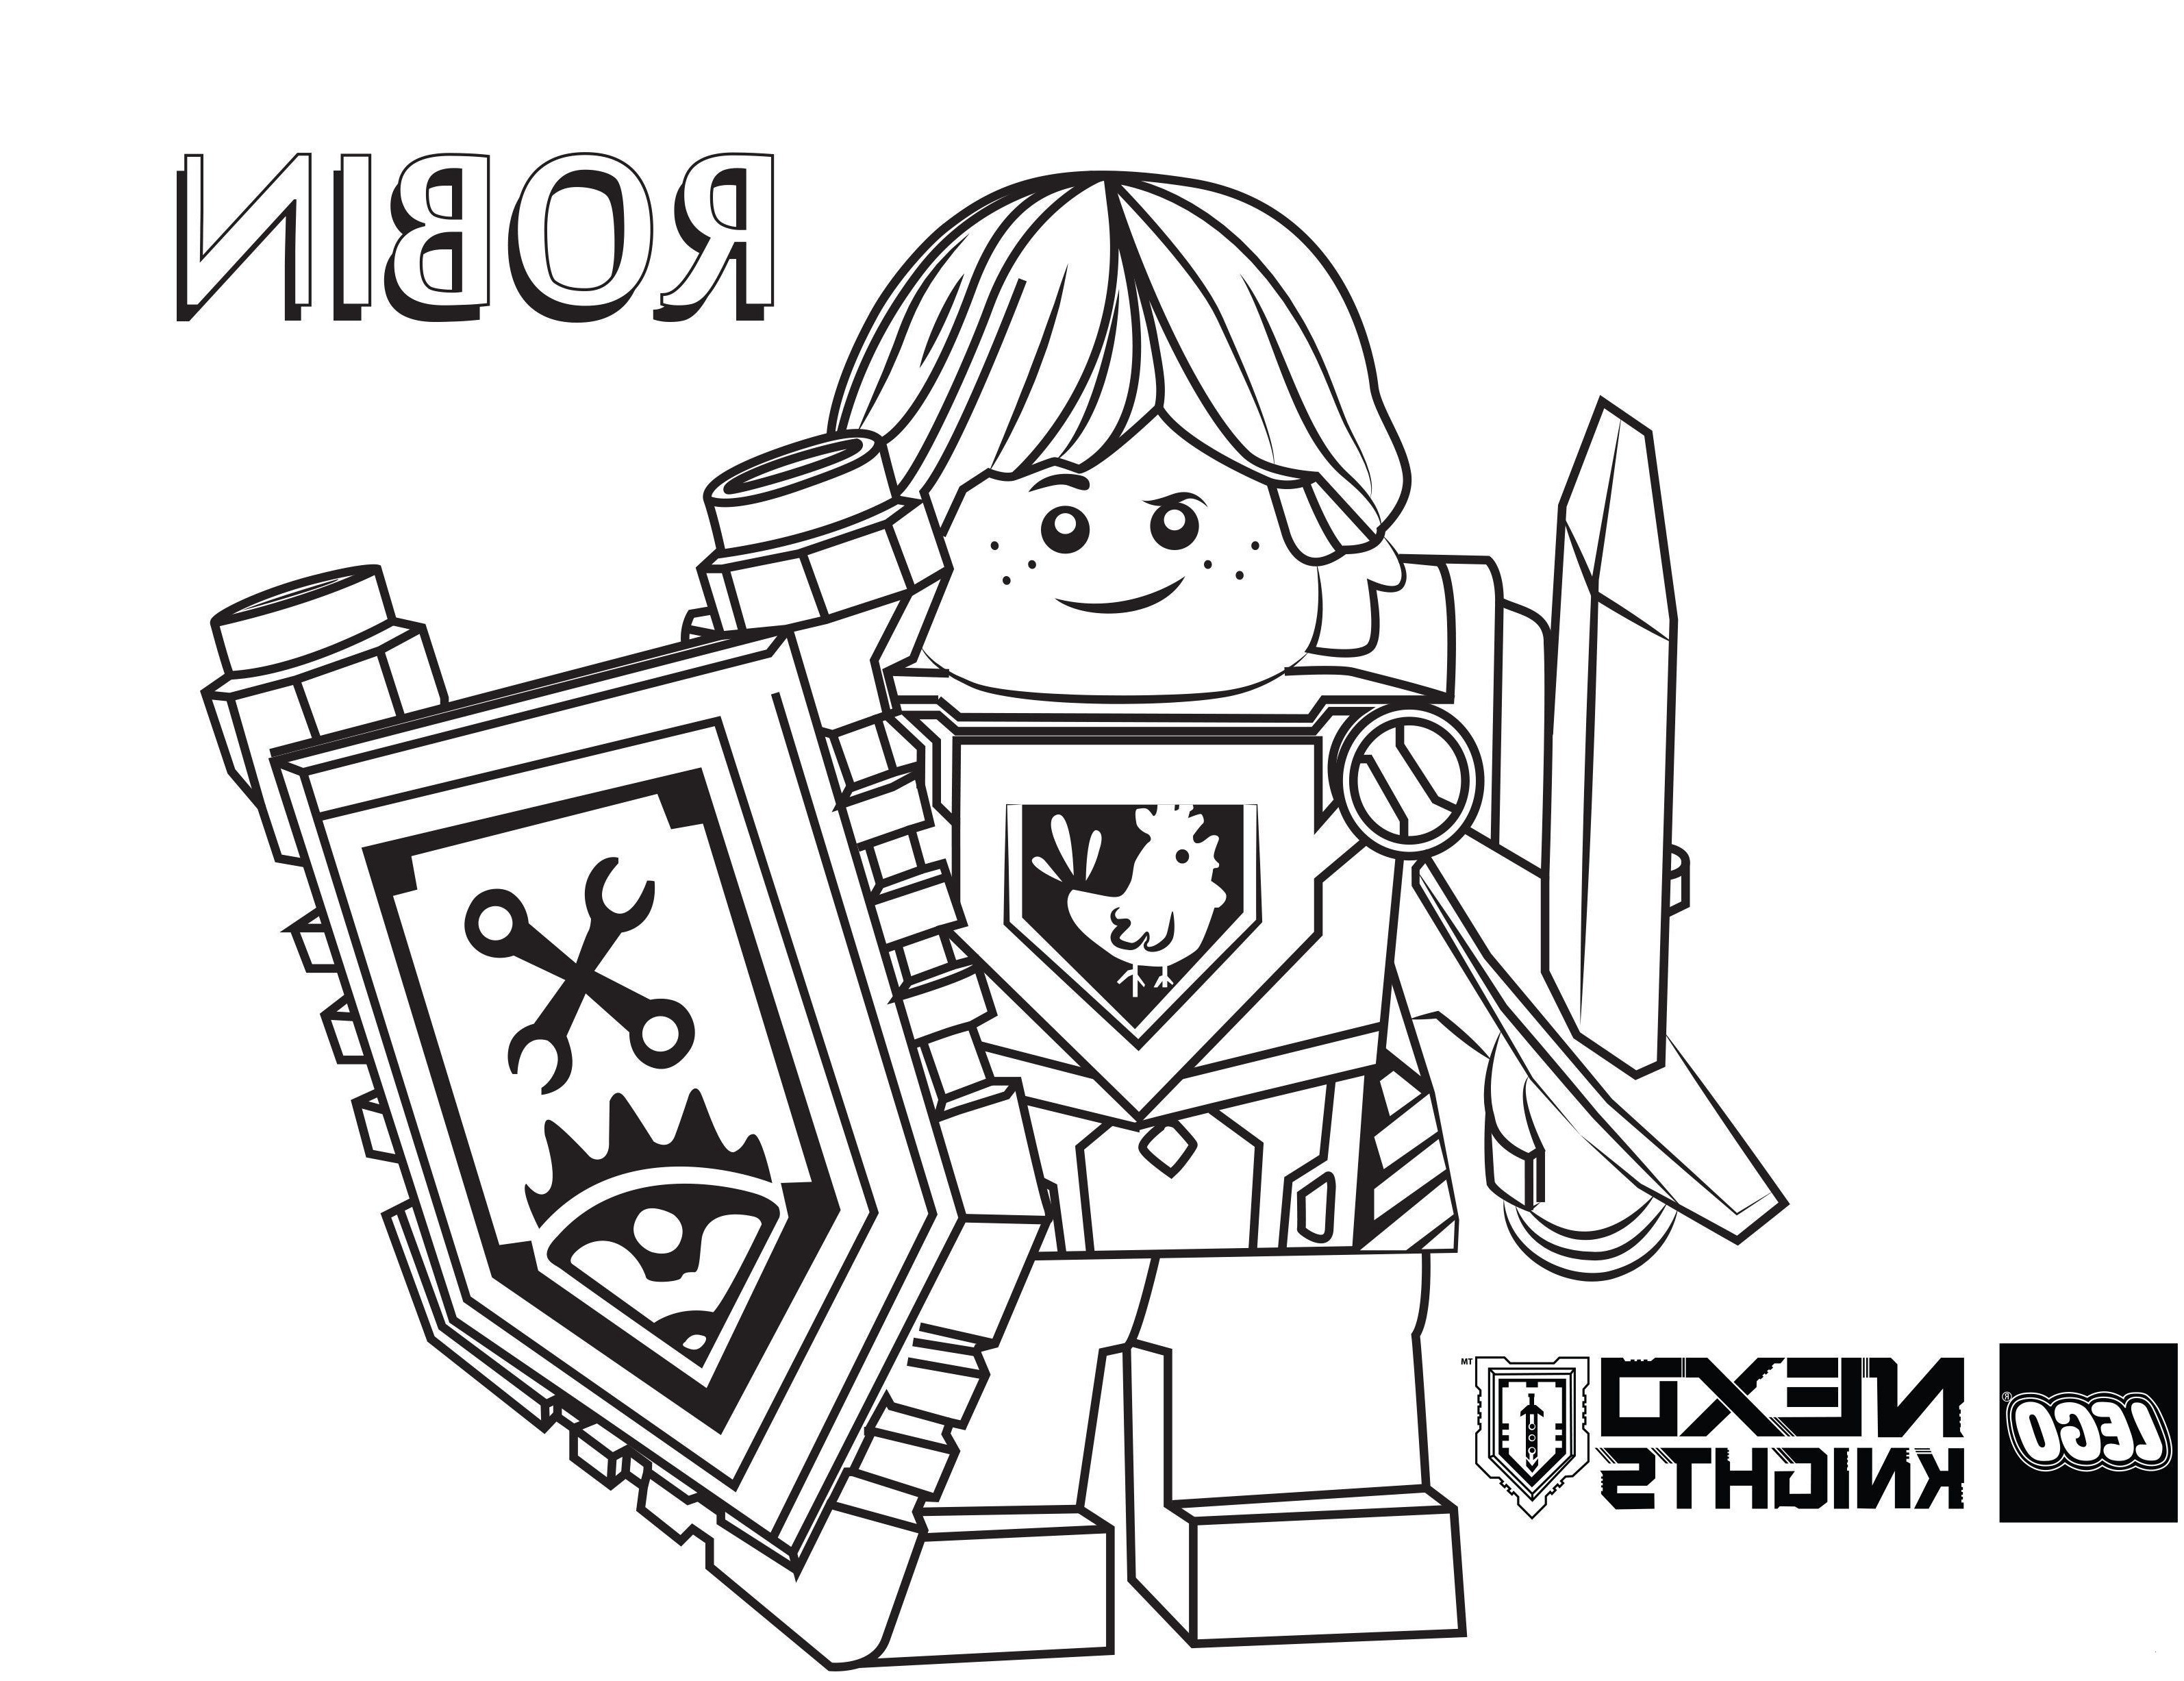 garmadon malvorlagen | Coloring and Malvorlagan